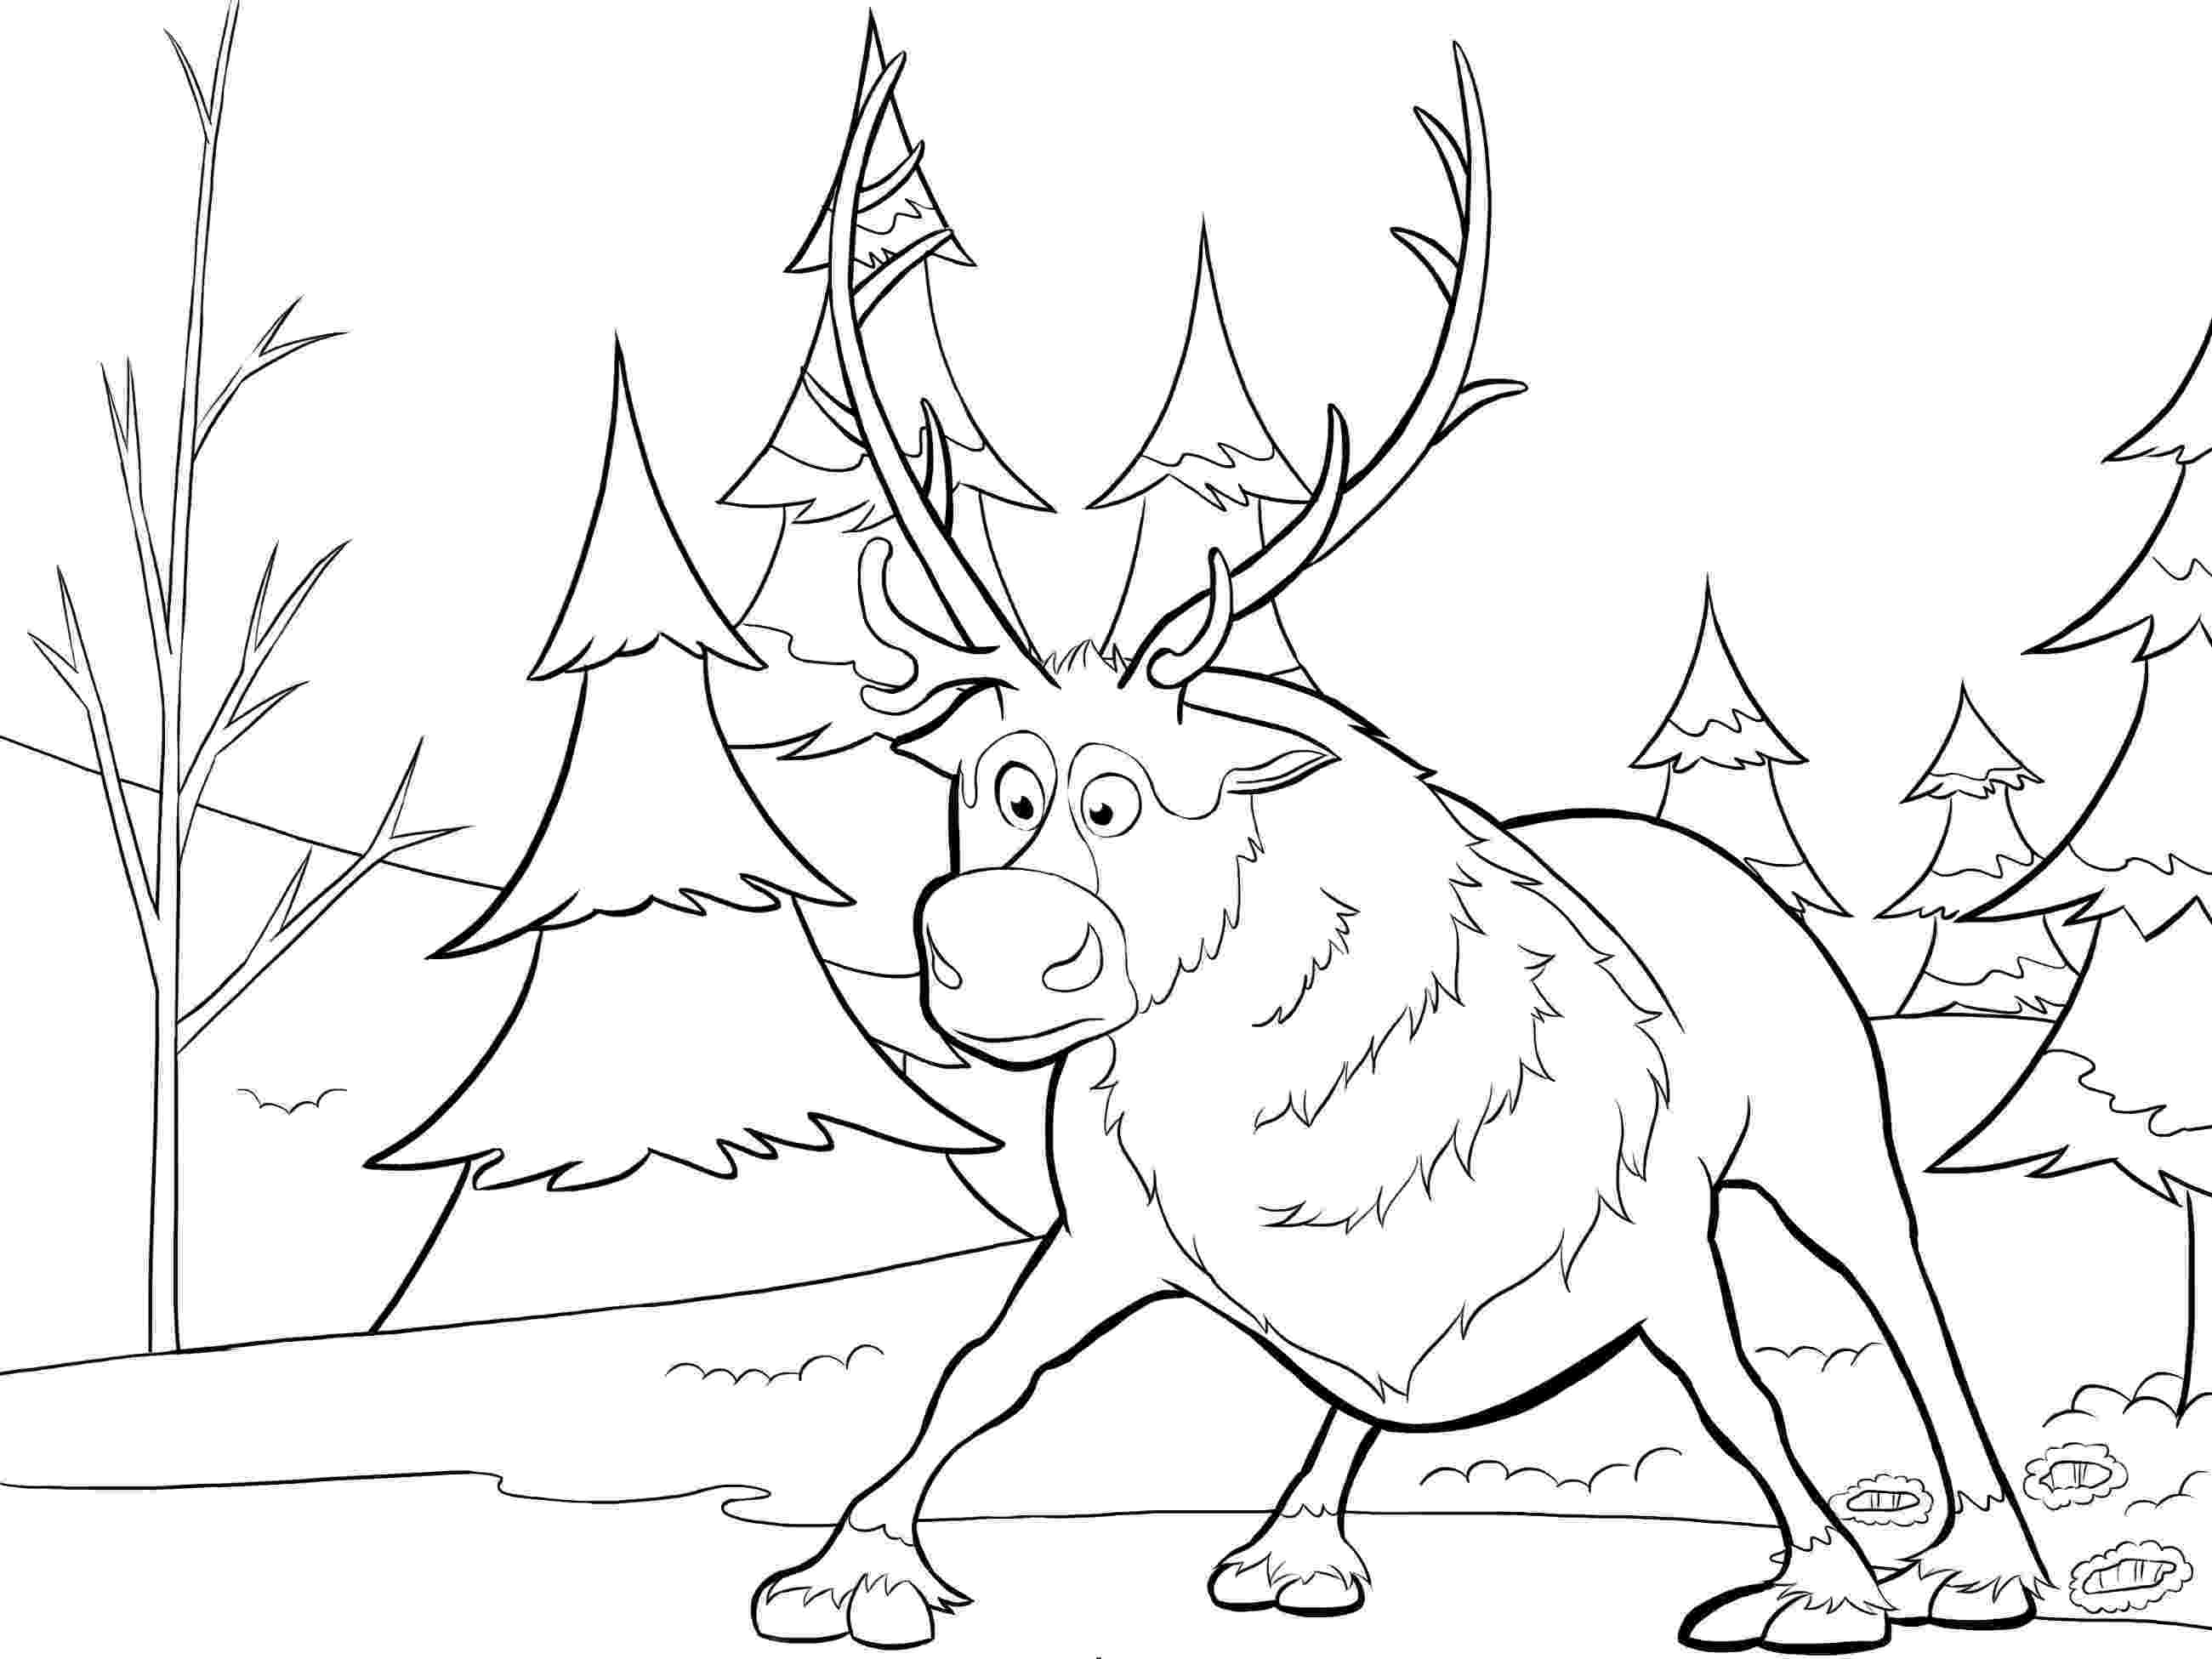 sven coloring pages frozen coloring sven as a cub frozen games sven pages coloring